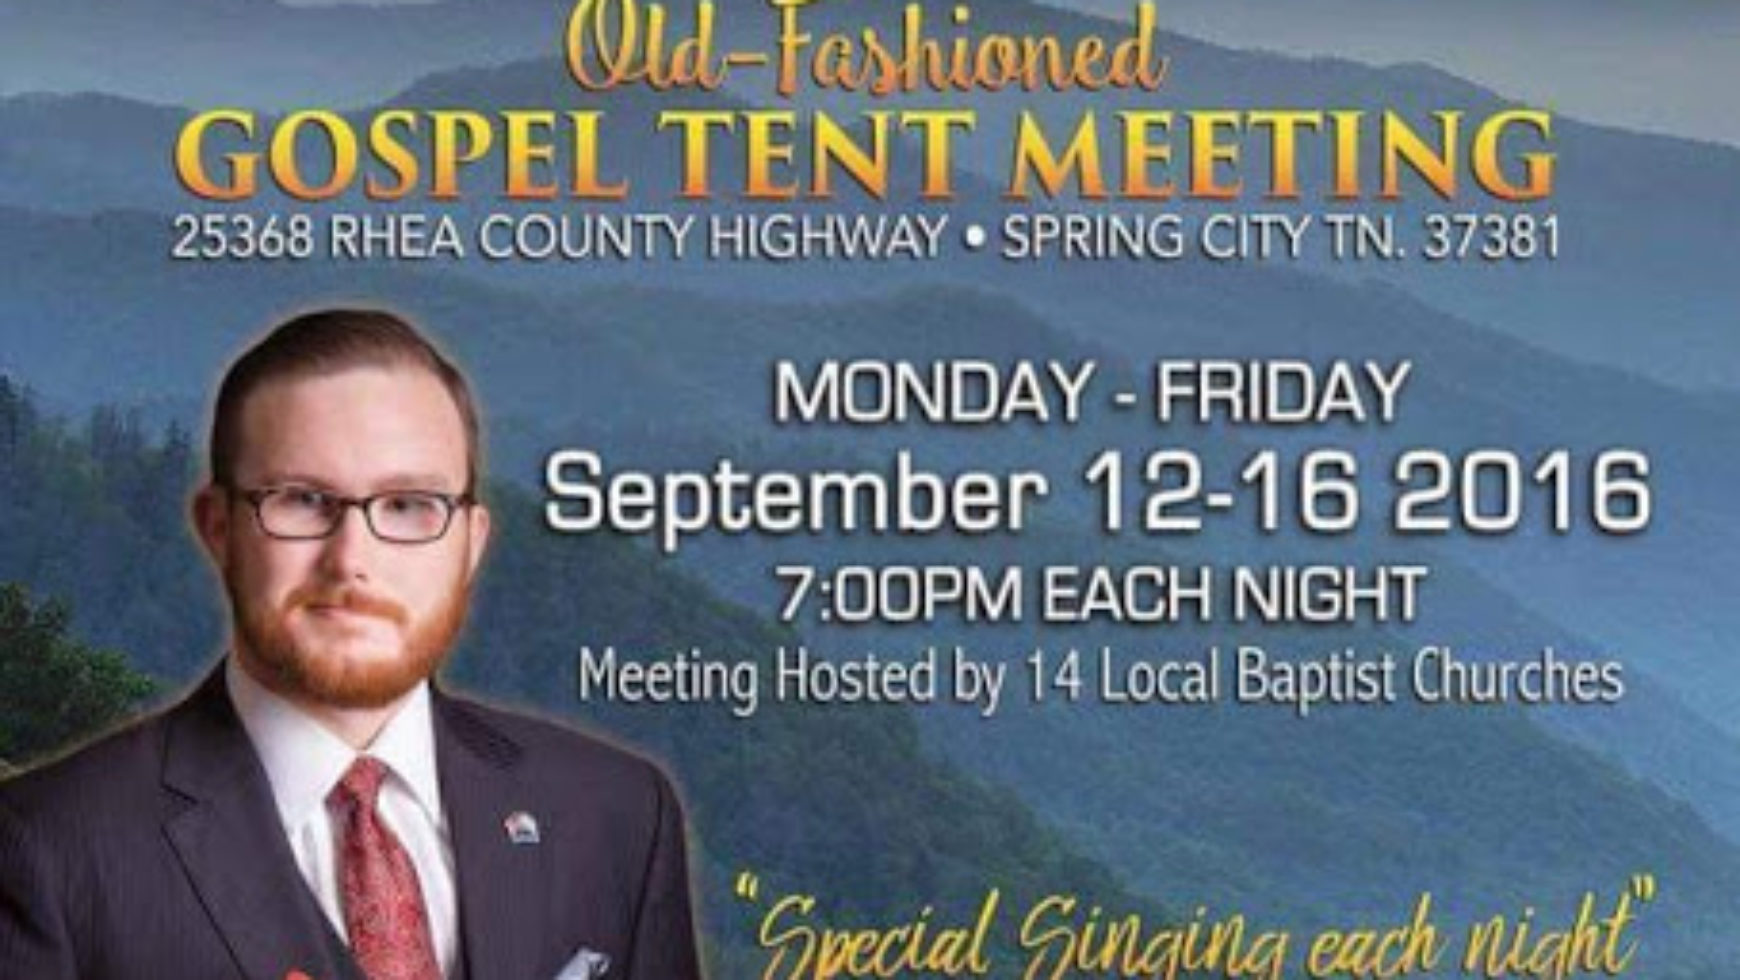 Area Meeting: Tent Meeting – 14 Area Churches – Spring City, Tn